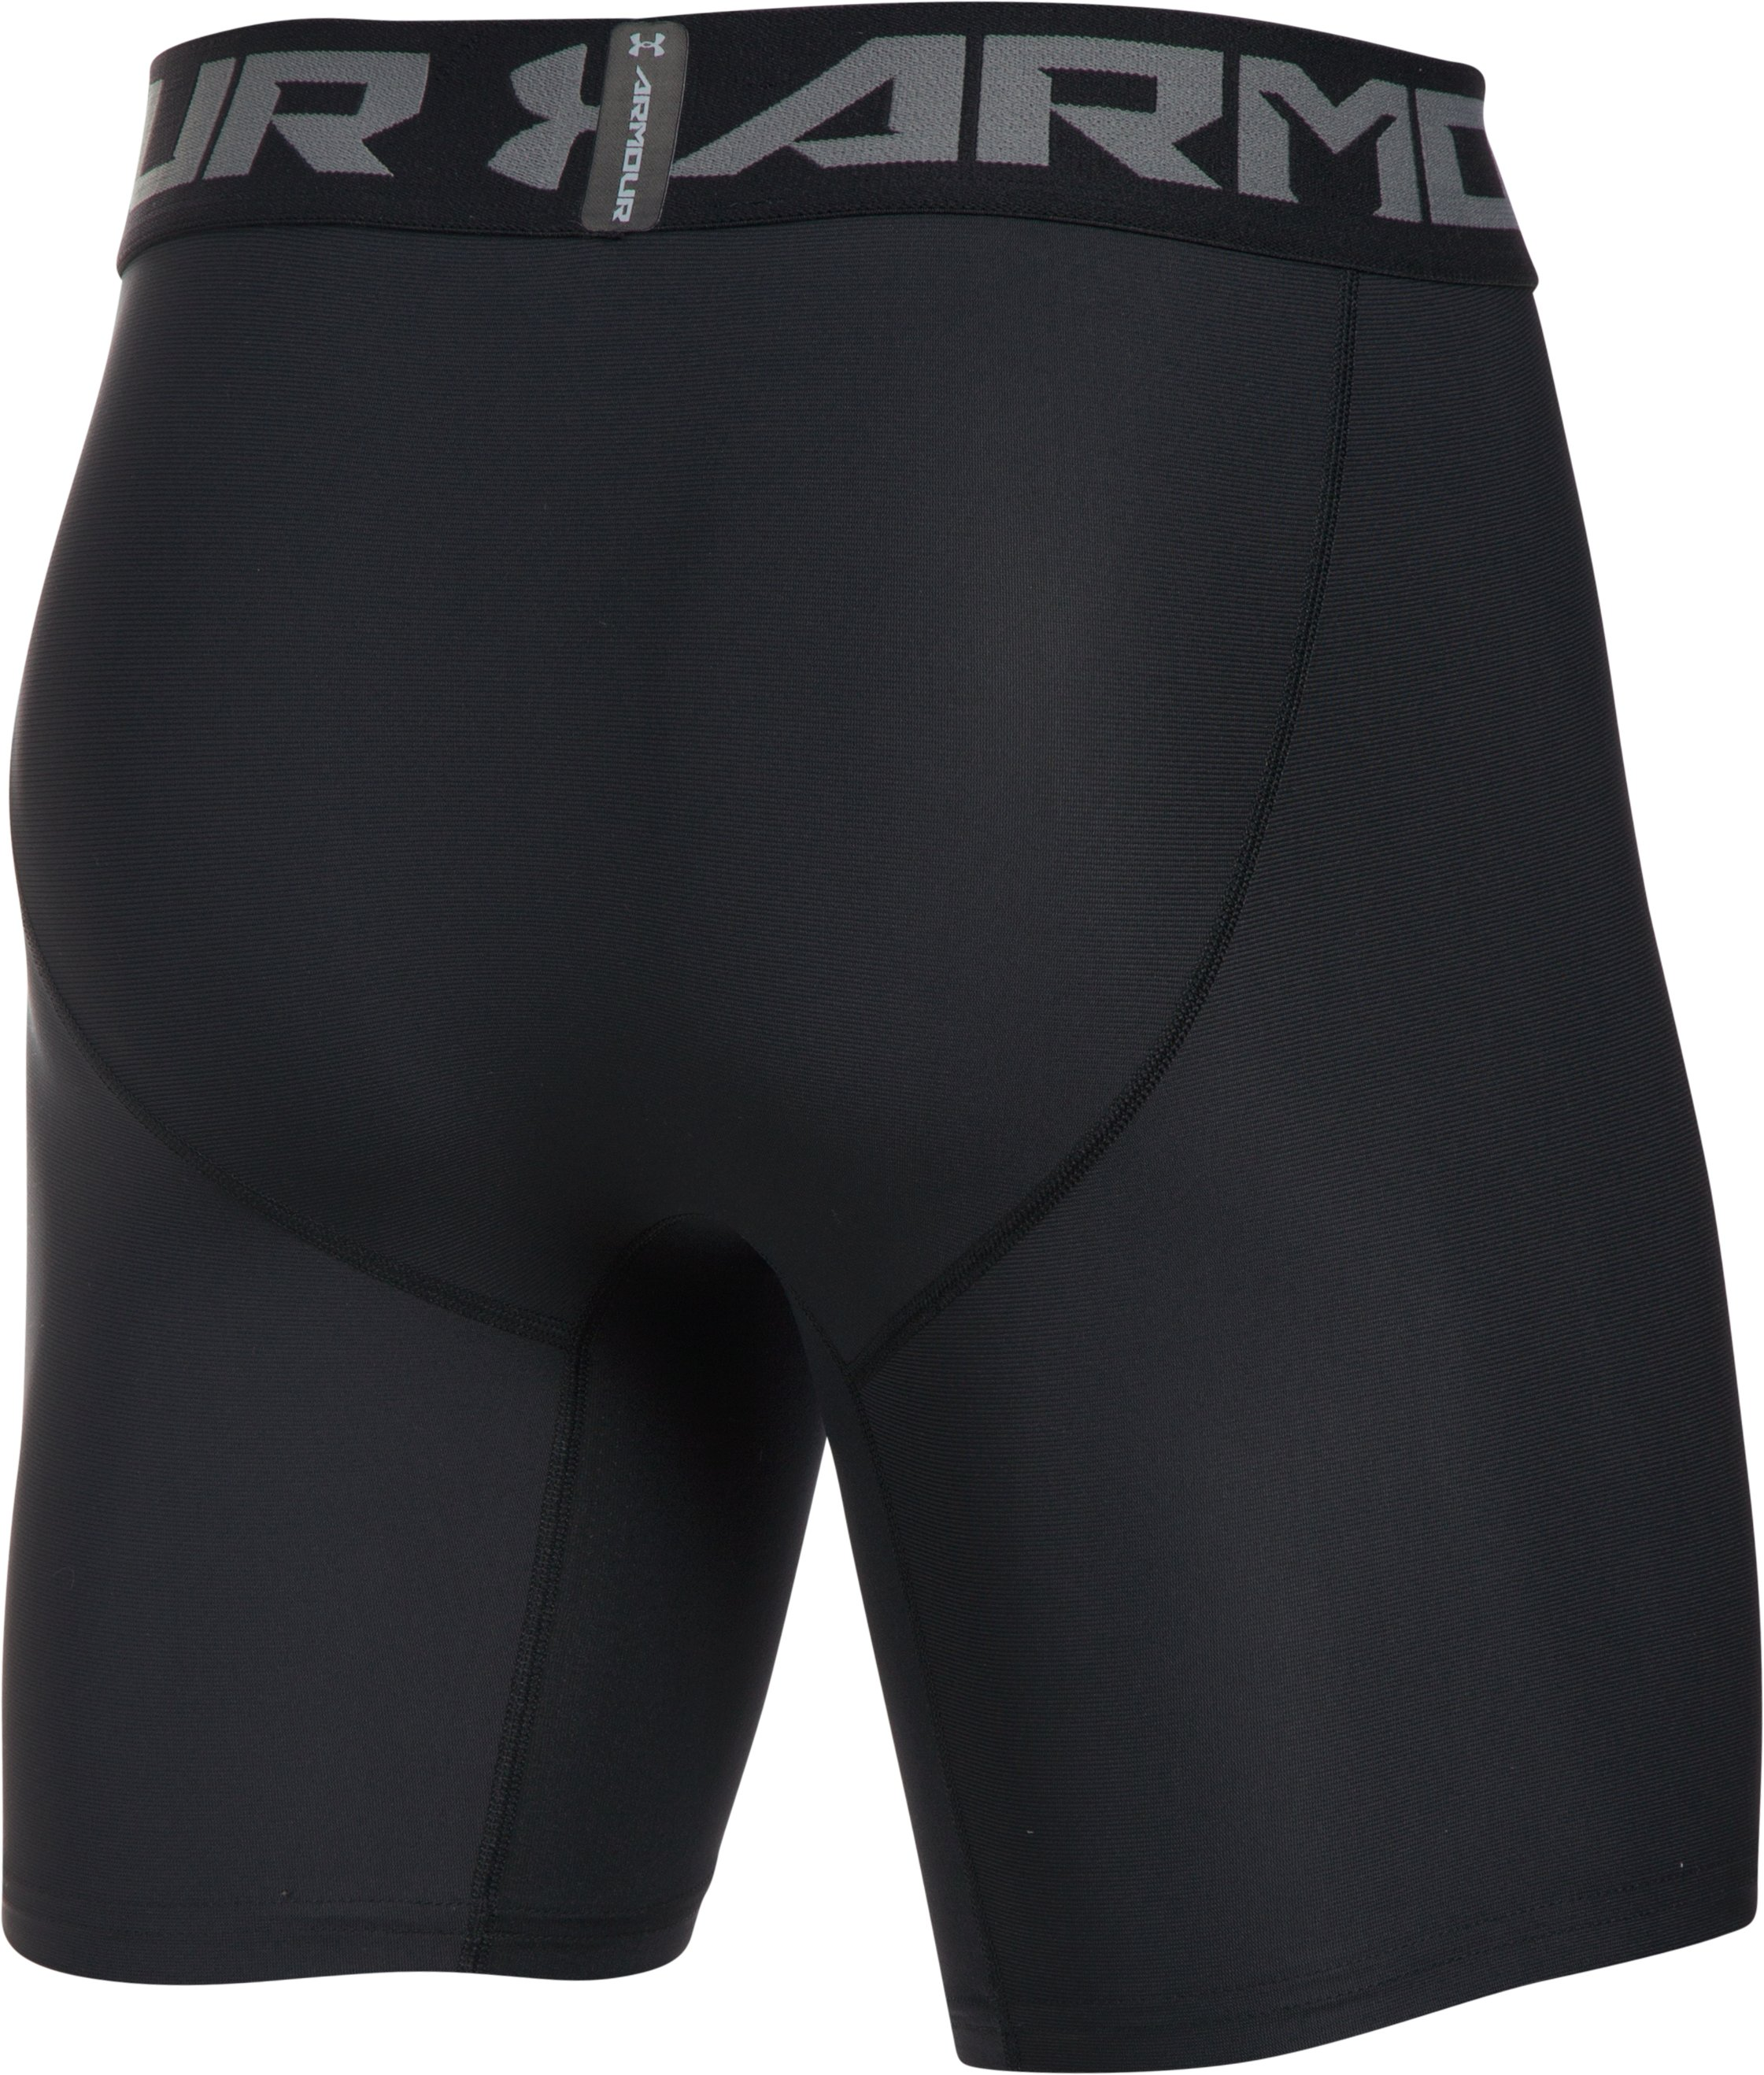 Men's HeatGear® Armour Mid Compression Shorts, Black ,